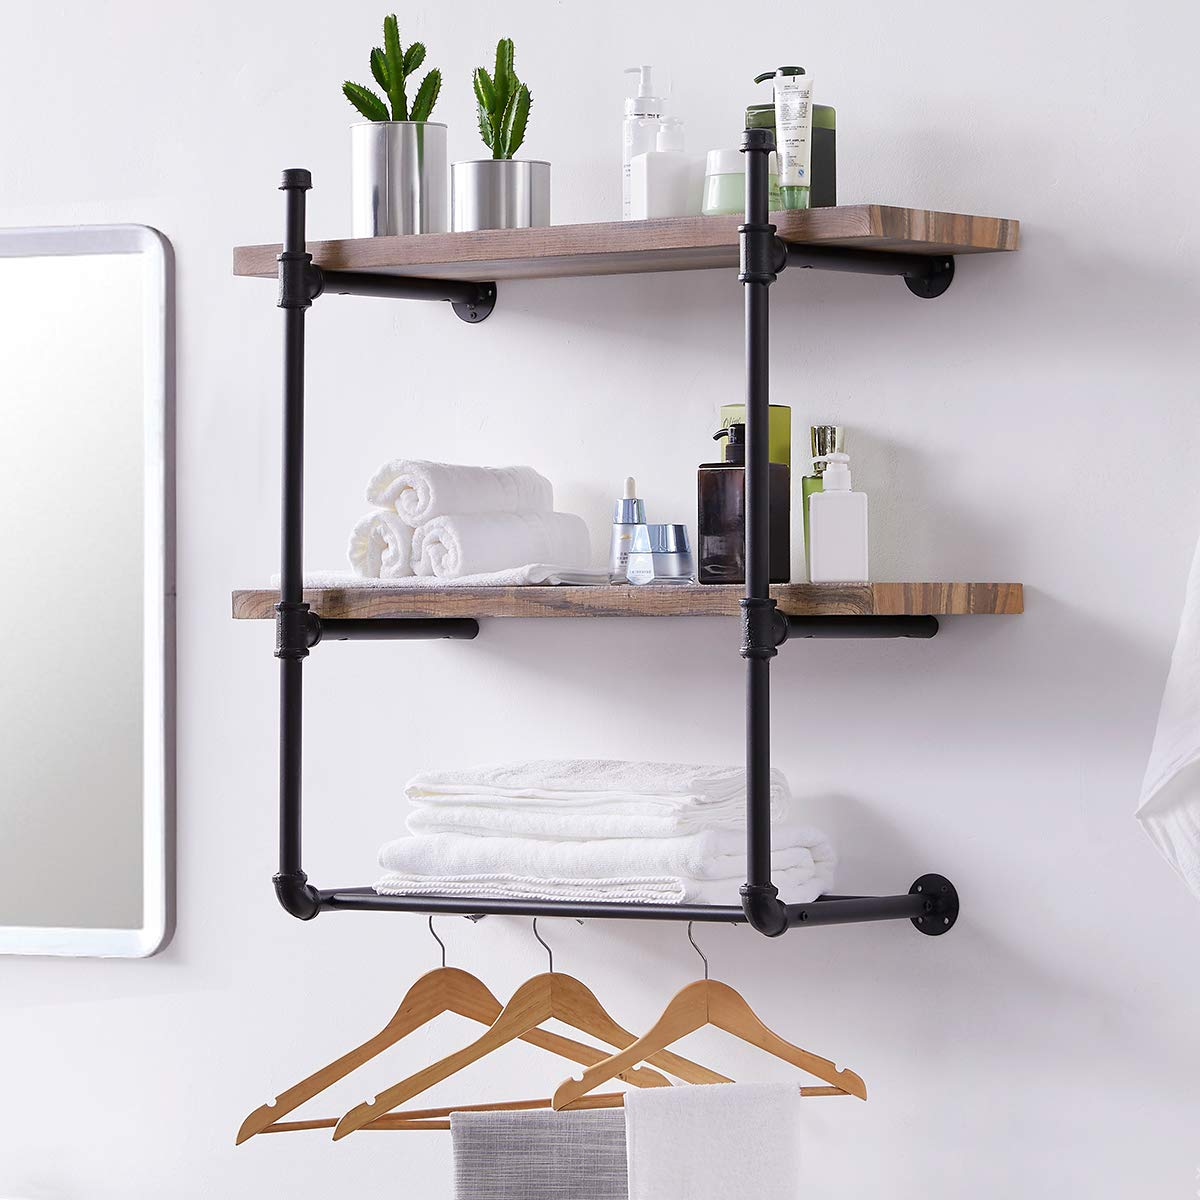 Homissue 3 Shelf Pipe Floating Wall Shelf, Vintage Industrial Wall Mounted Shelf with Metal Mesh Storage Display Racks for Bathroom&Living Room, Retro Brown by Homissue